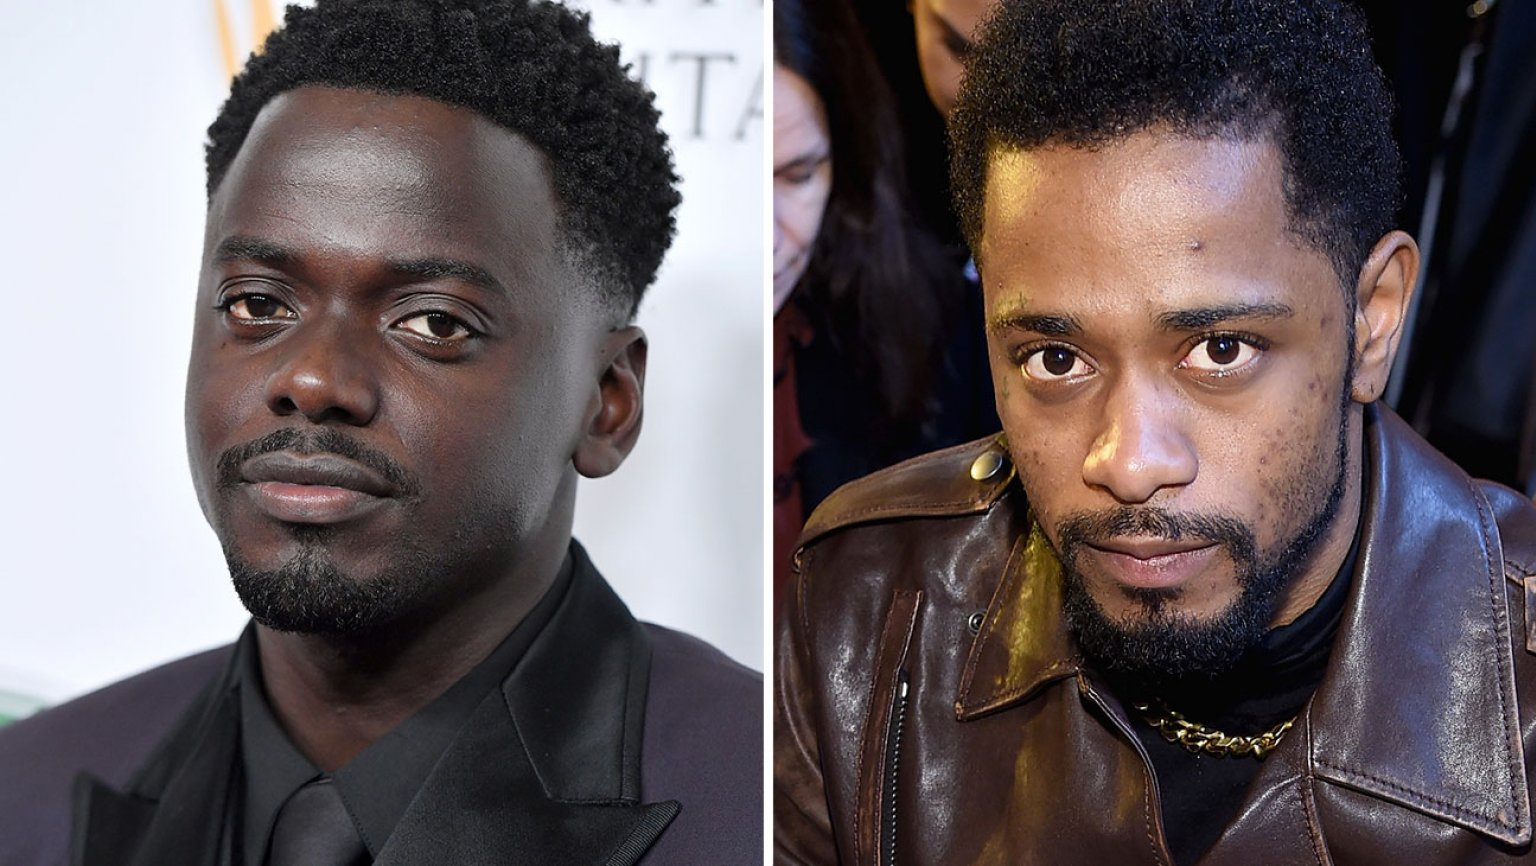 daniel_kaluuya__lakeith_stanfield-_split-h_2019.jpg